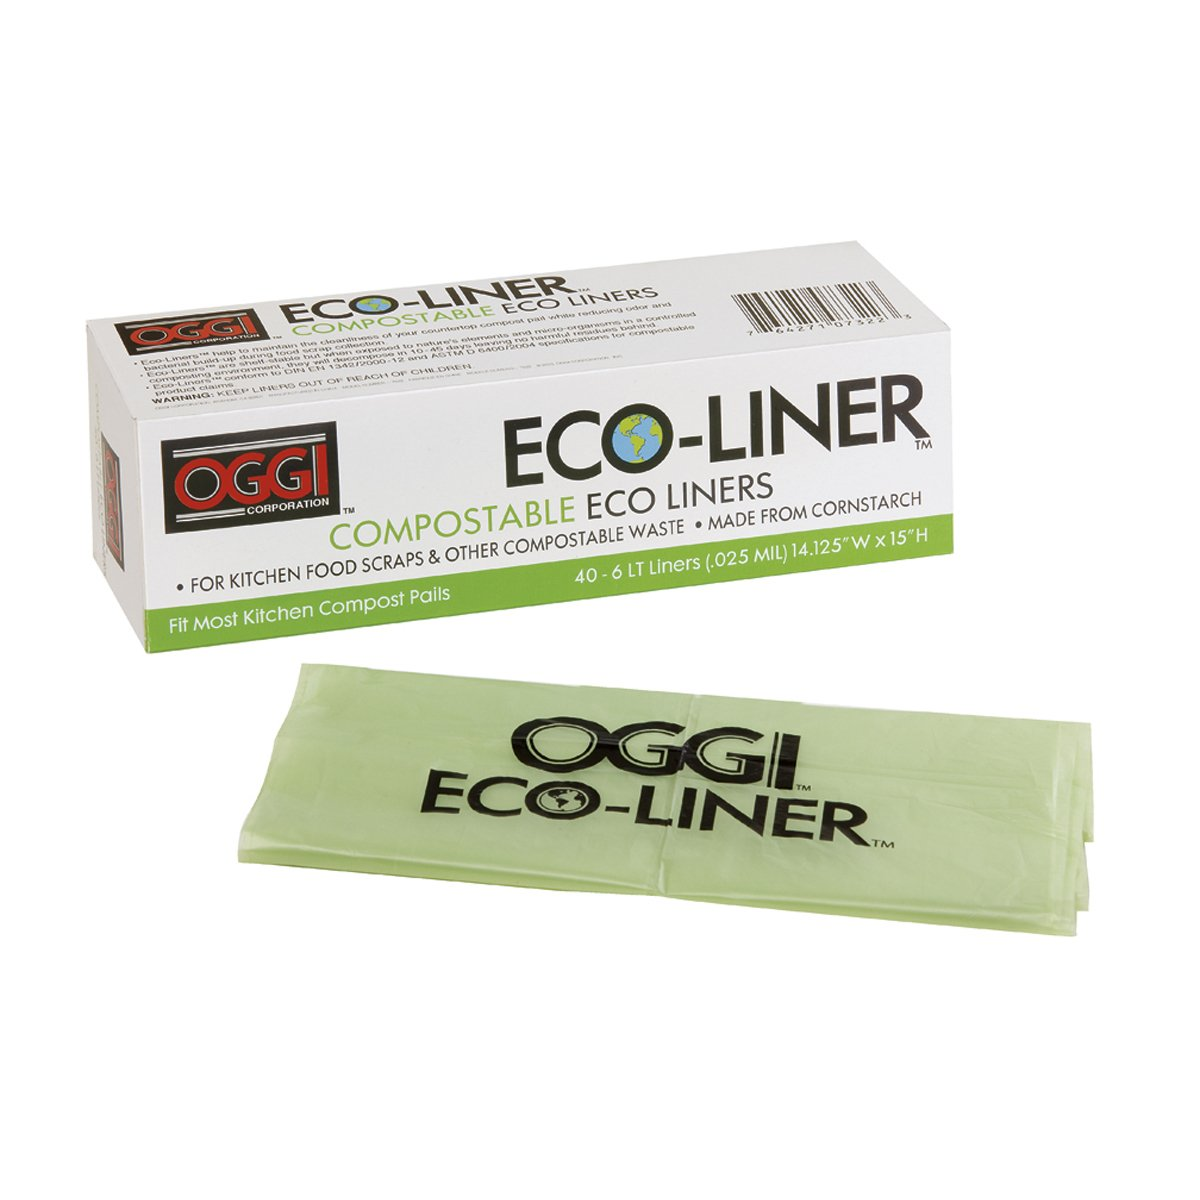 Oggi Eco-Liner Compost Pail Liners 7322